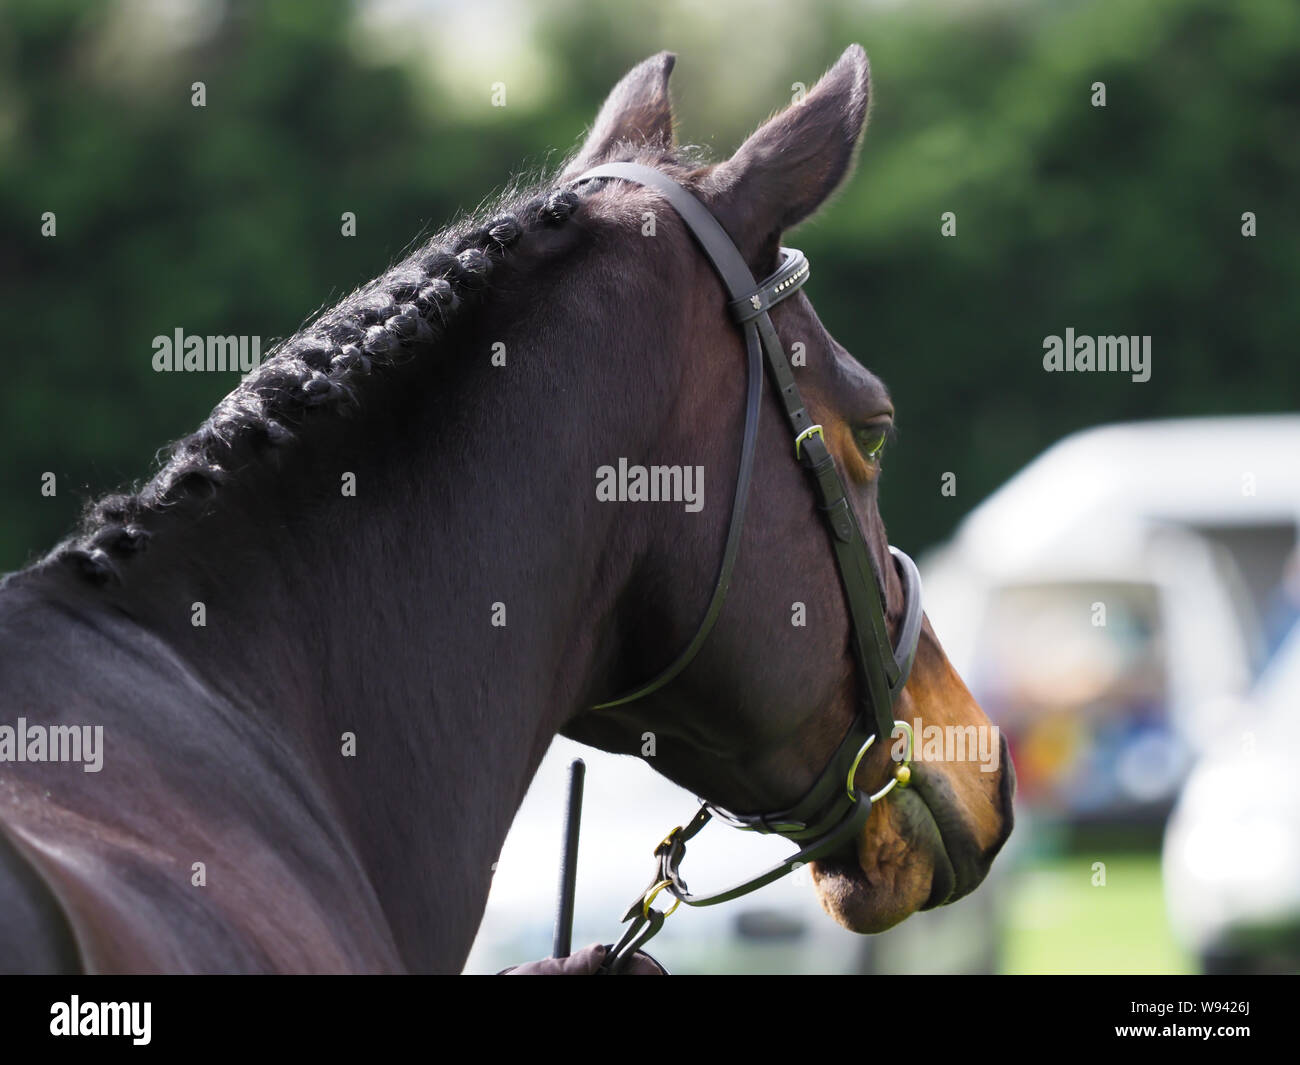 A bay plainted horse in hand looking away from the camera. Stock Photo